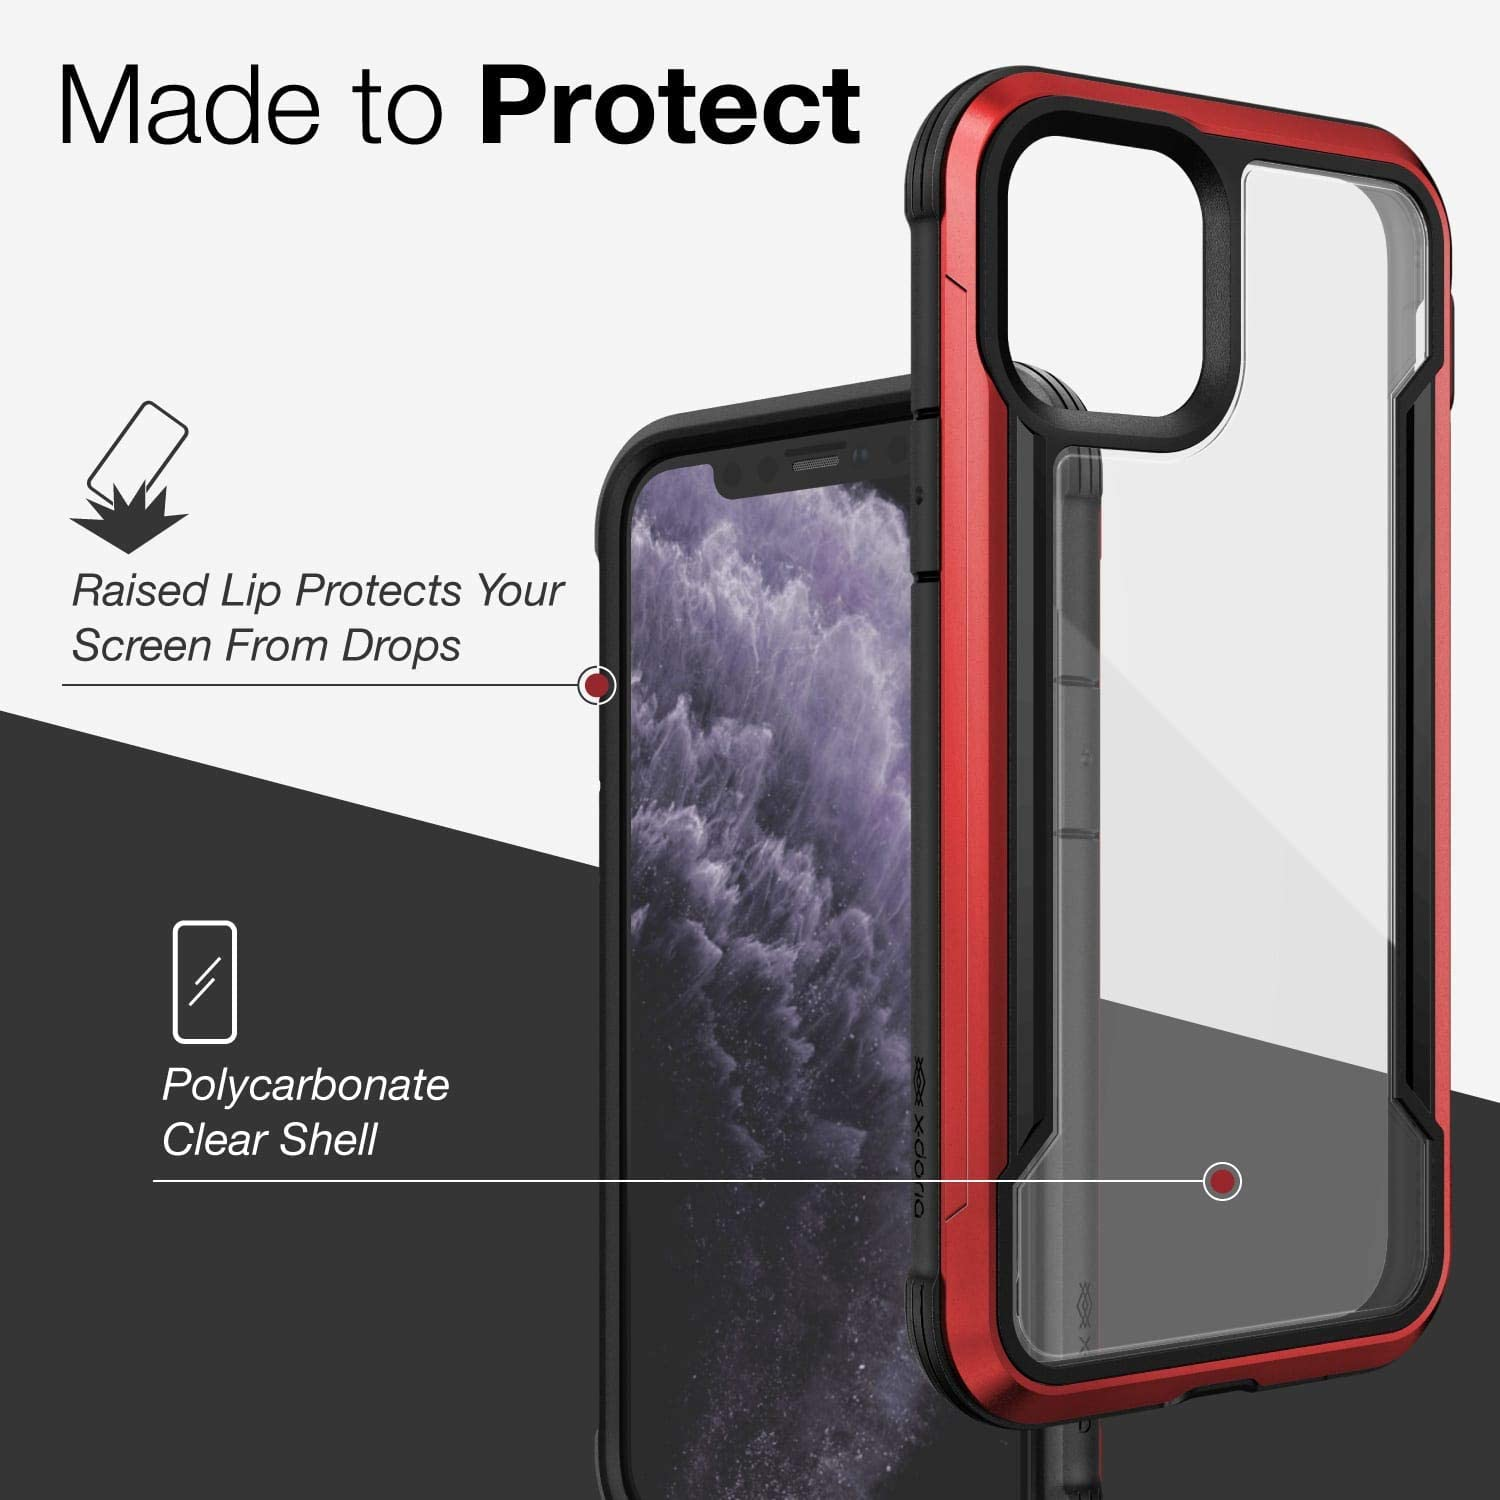 X-Doria Defense Shield, iPhone 11 Case - Military Grade Drop Tested, CNC Anodized Aluminum Metal, TPU, and Polycarbonate Protective Case for Apple iPhone 11, (Red)